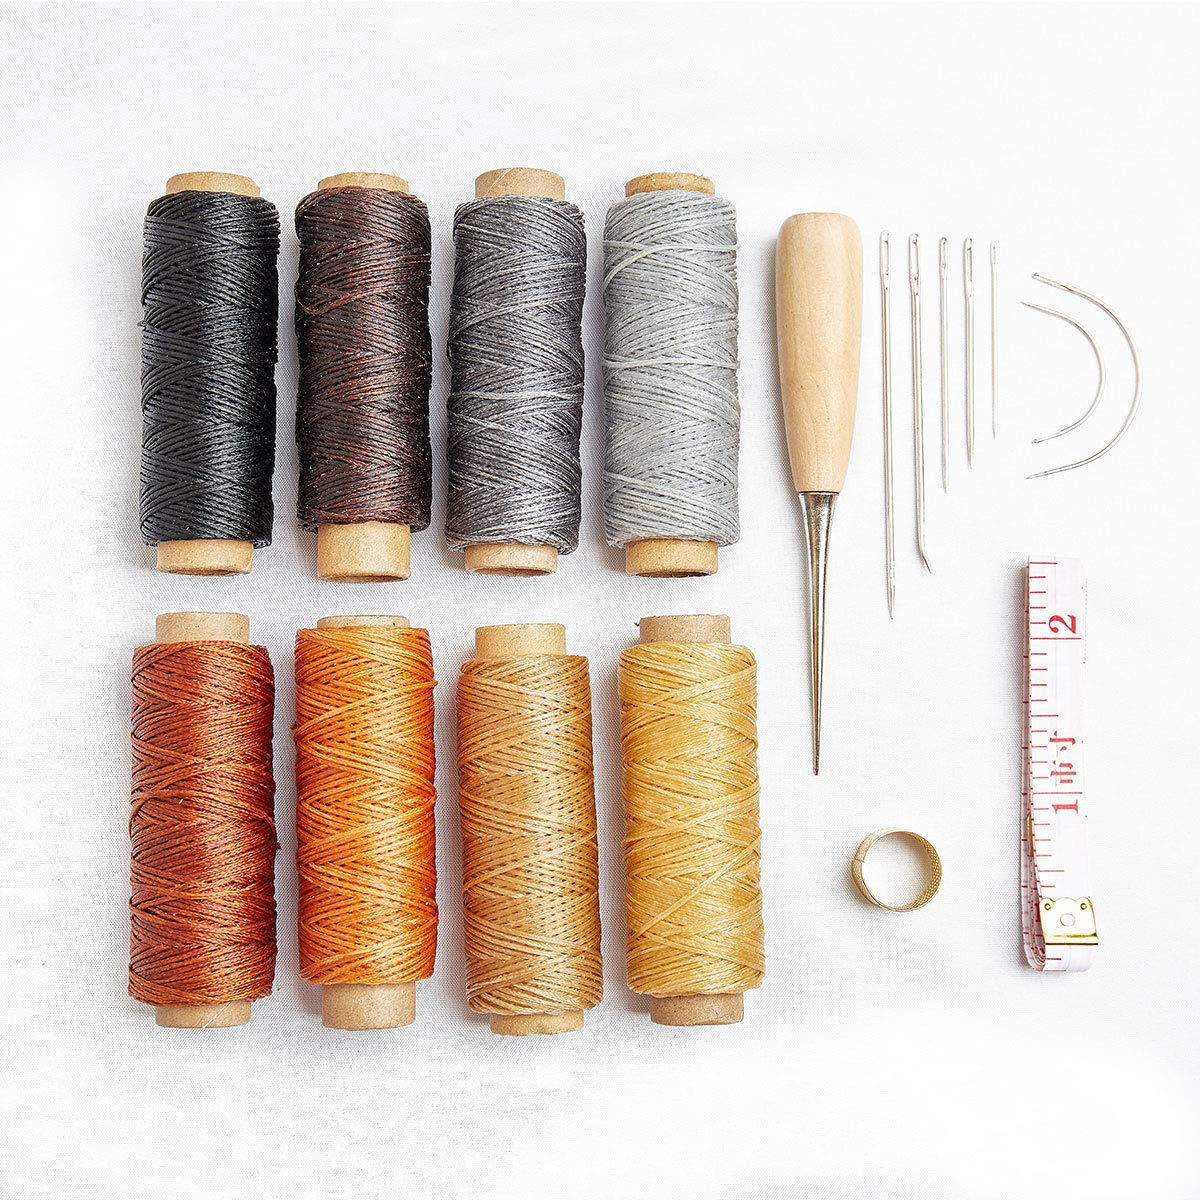 18pcs Waxed Thread with Hand Sewing Needles Kit and Drilling Awl Thimble 150D 1mm Hand Stitching Cord for Leather Craft DIY (18 Leather Sewing kit) Rabbica